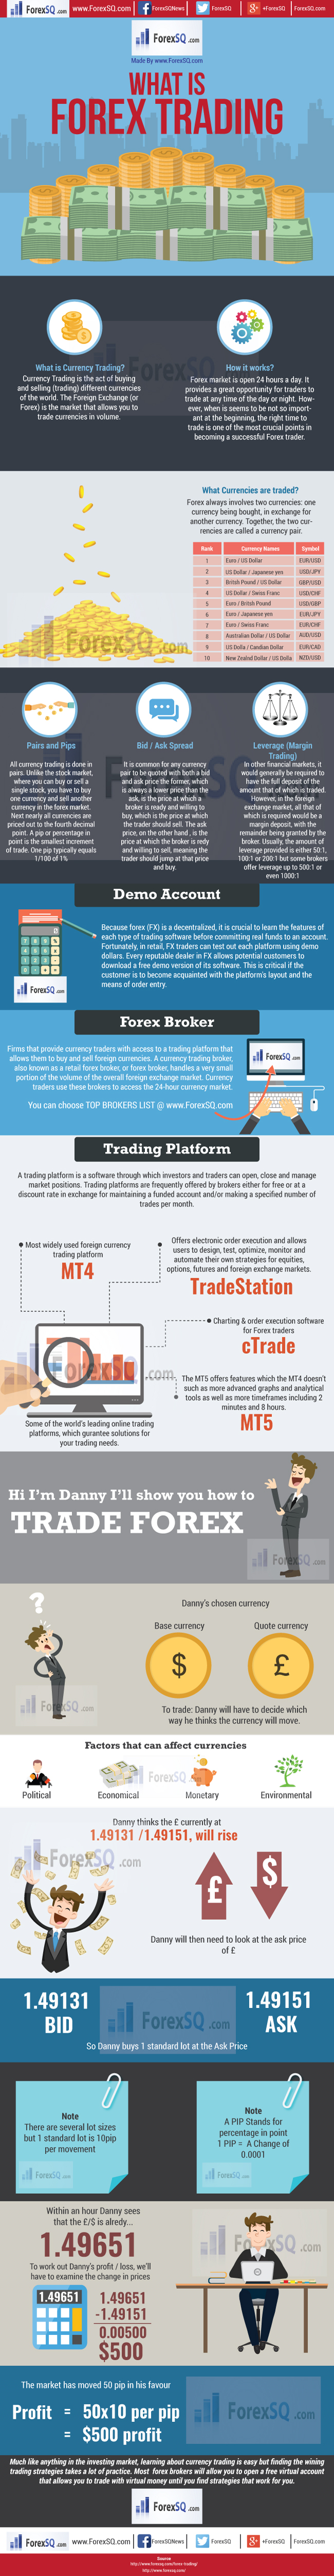 Forex Currency Trading Online infographic by Forexsq, Forex Trading Online, What is Forex trading, How to do currency trading, make money trading Forex, learn Online trading in foreign exchange market, start fx trading account, trade forex online by best demo account